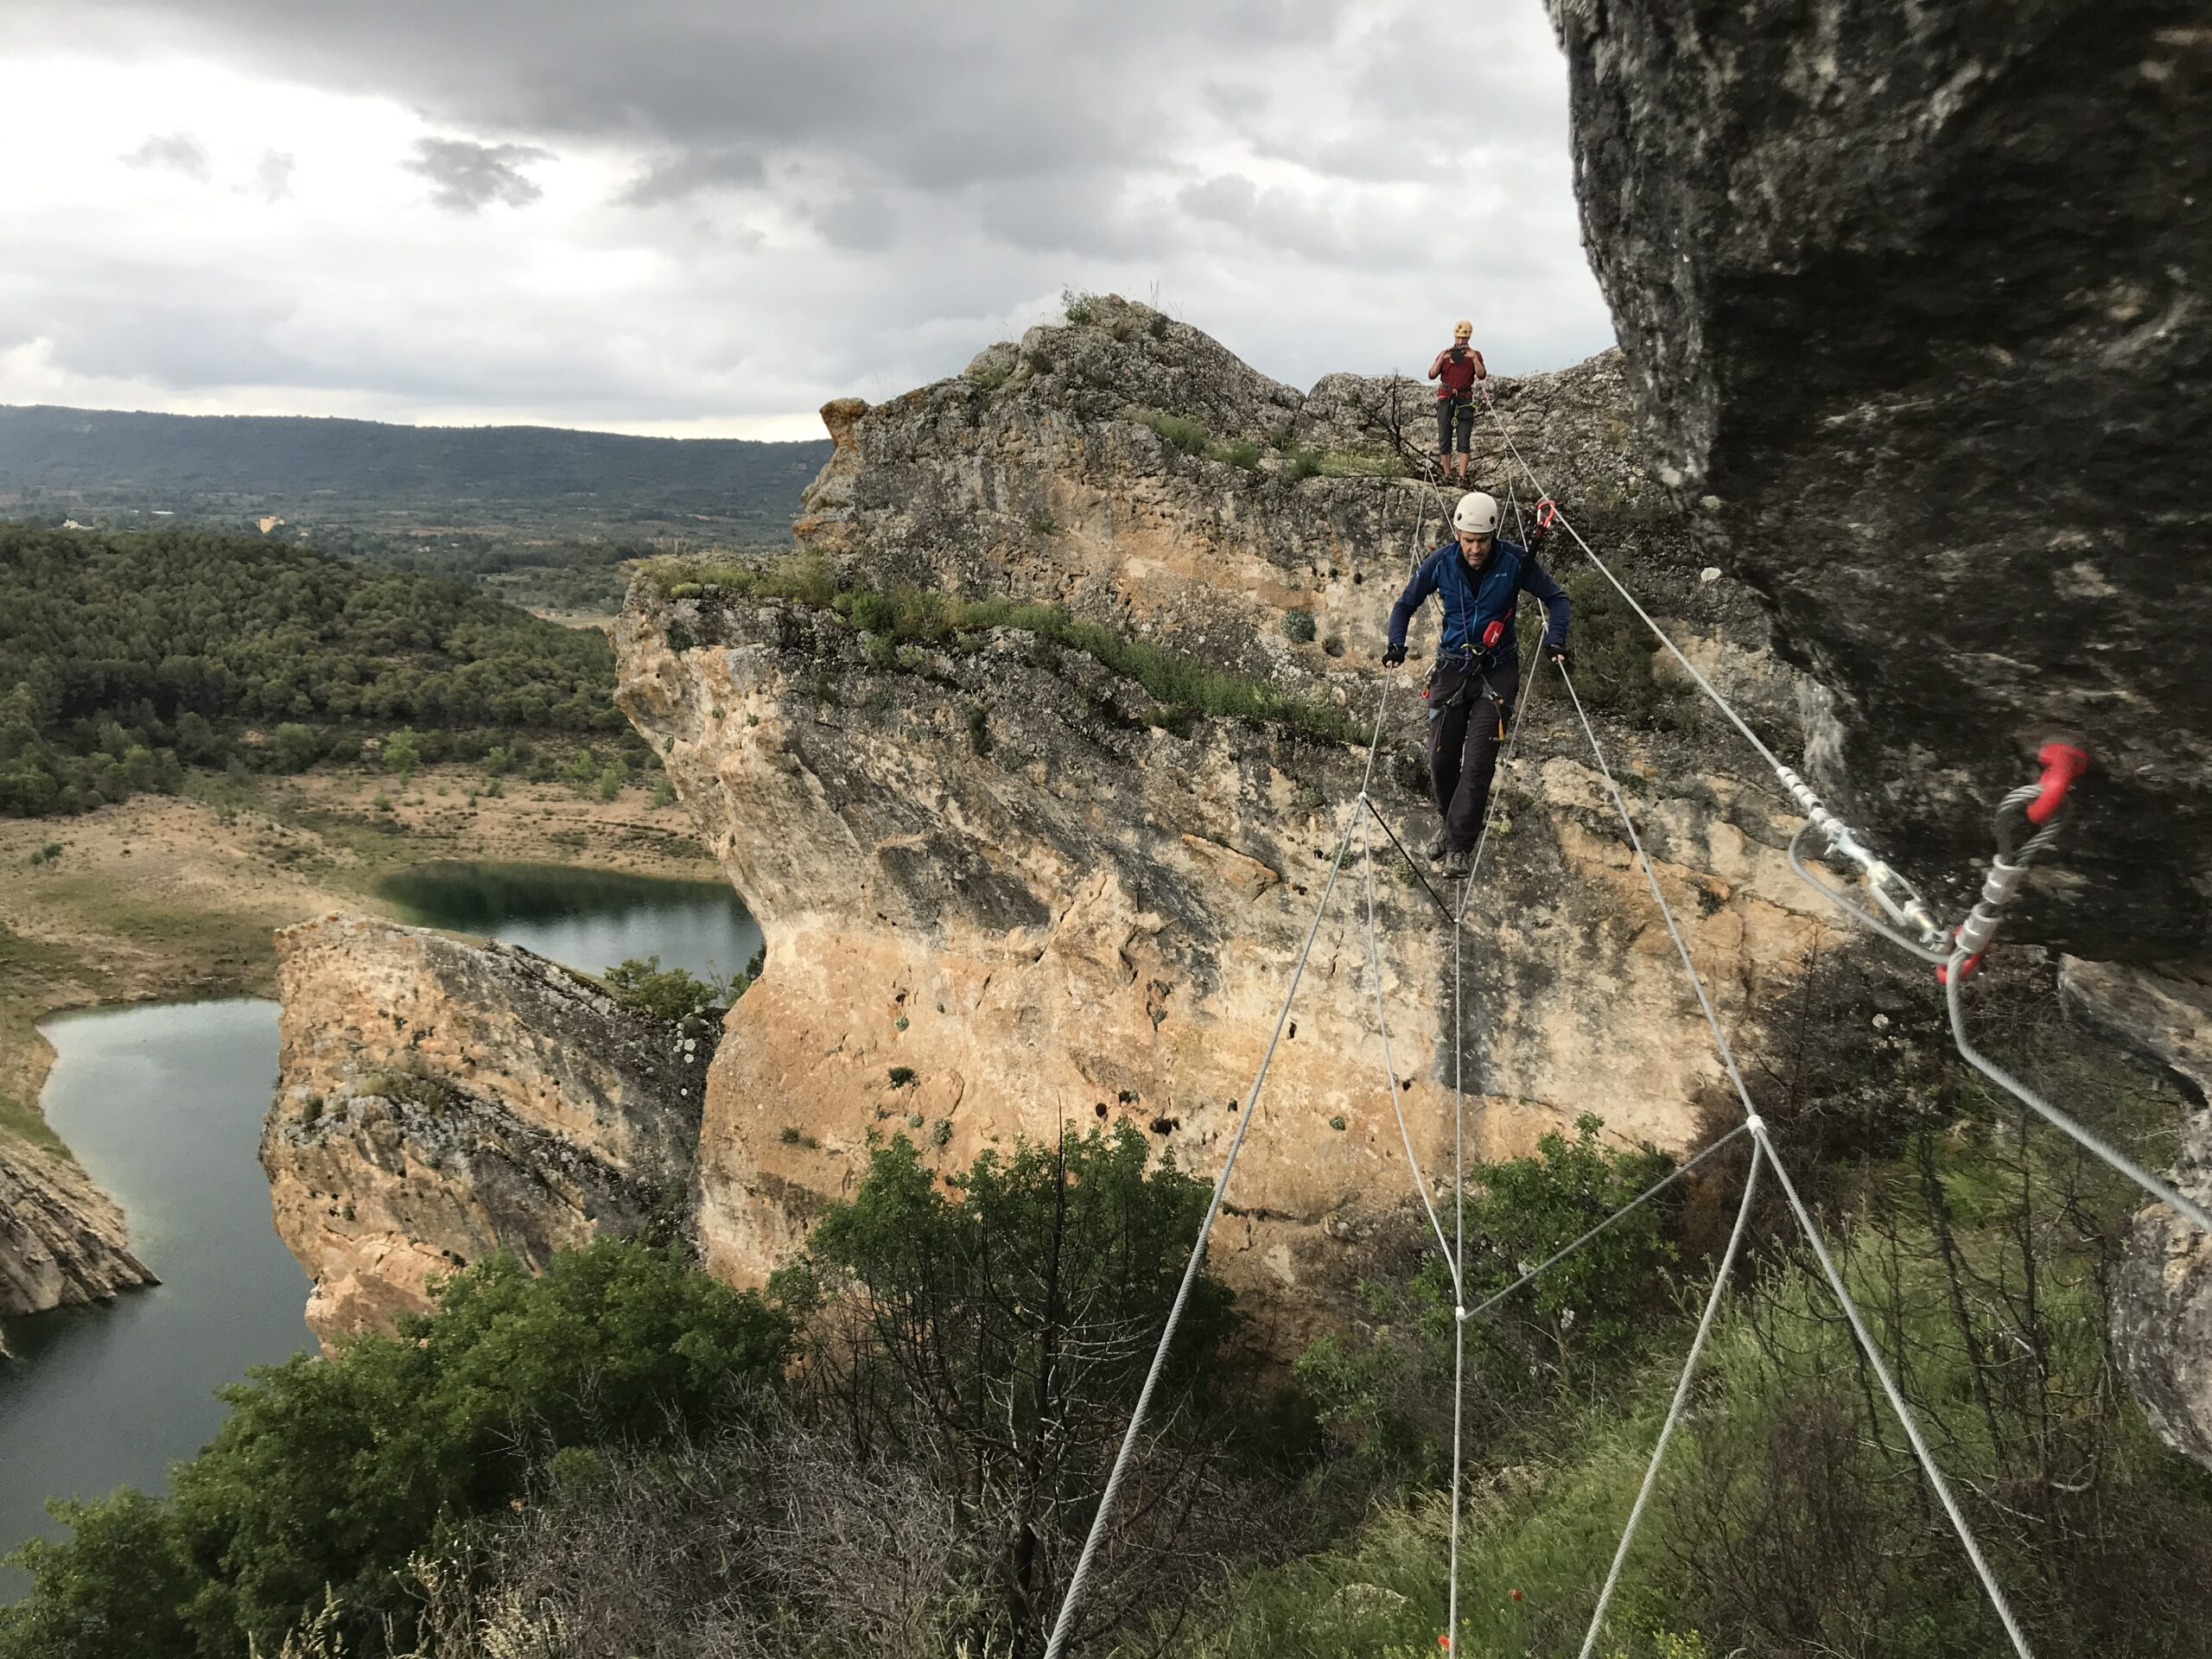 Hanging Bridges And Ziplines That Help You Move Along The Route In Our Via Ferrata Adventure Tour From Madrid